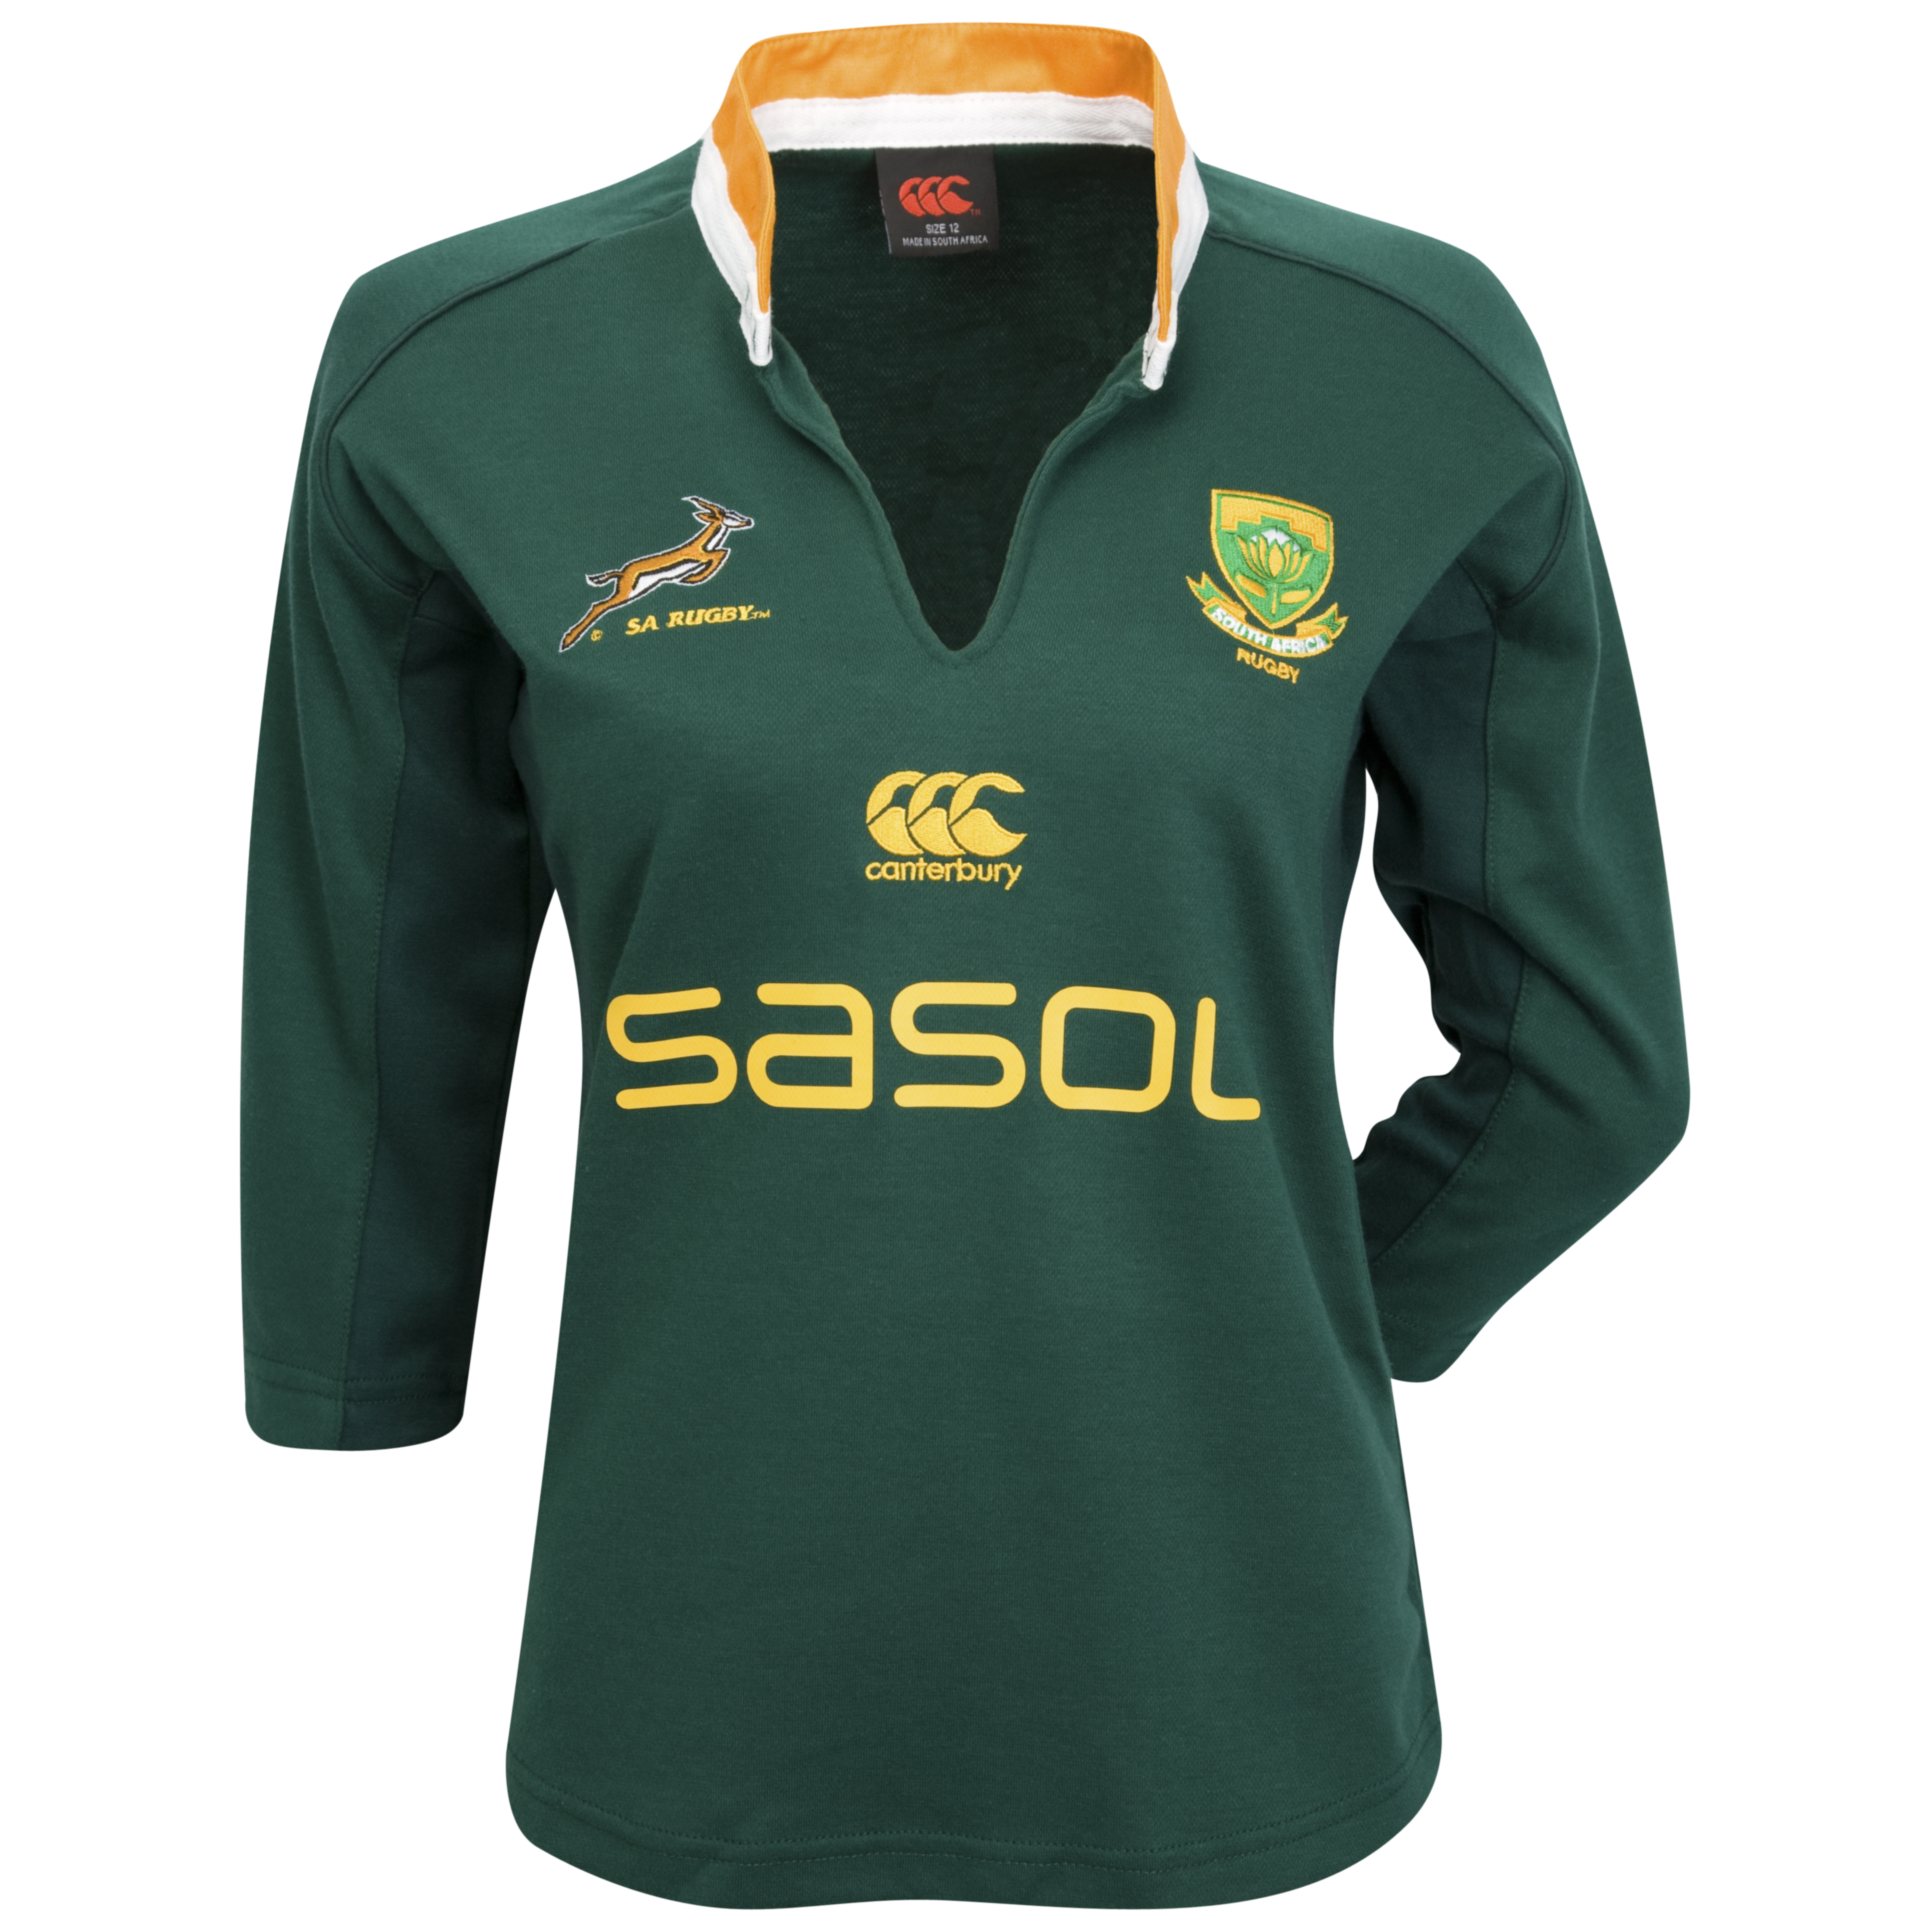 Springbok Supporters 3/4 Sleeve Rugby Shirt - Womens